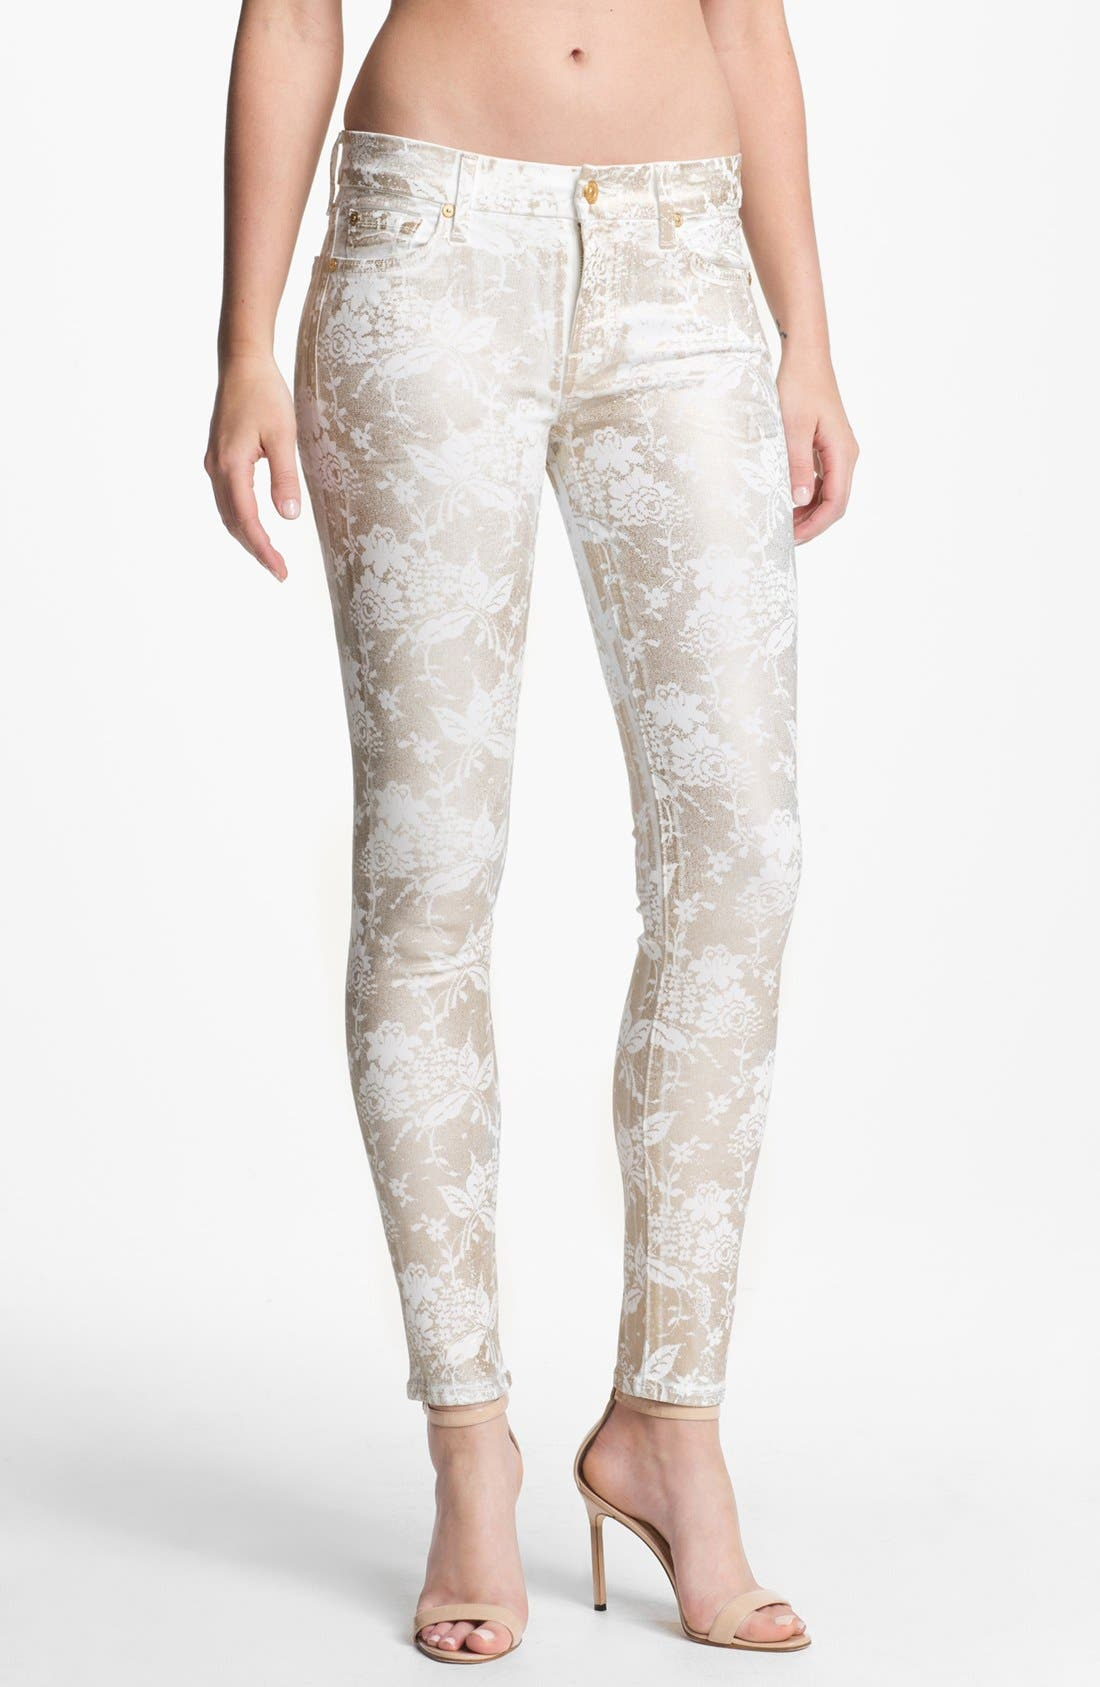 Main Image - 7 For All Mankind® 'The Skinny' Print Stretch Jeans (White/Almond Foil)